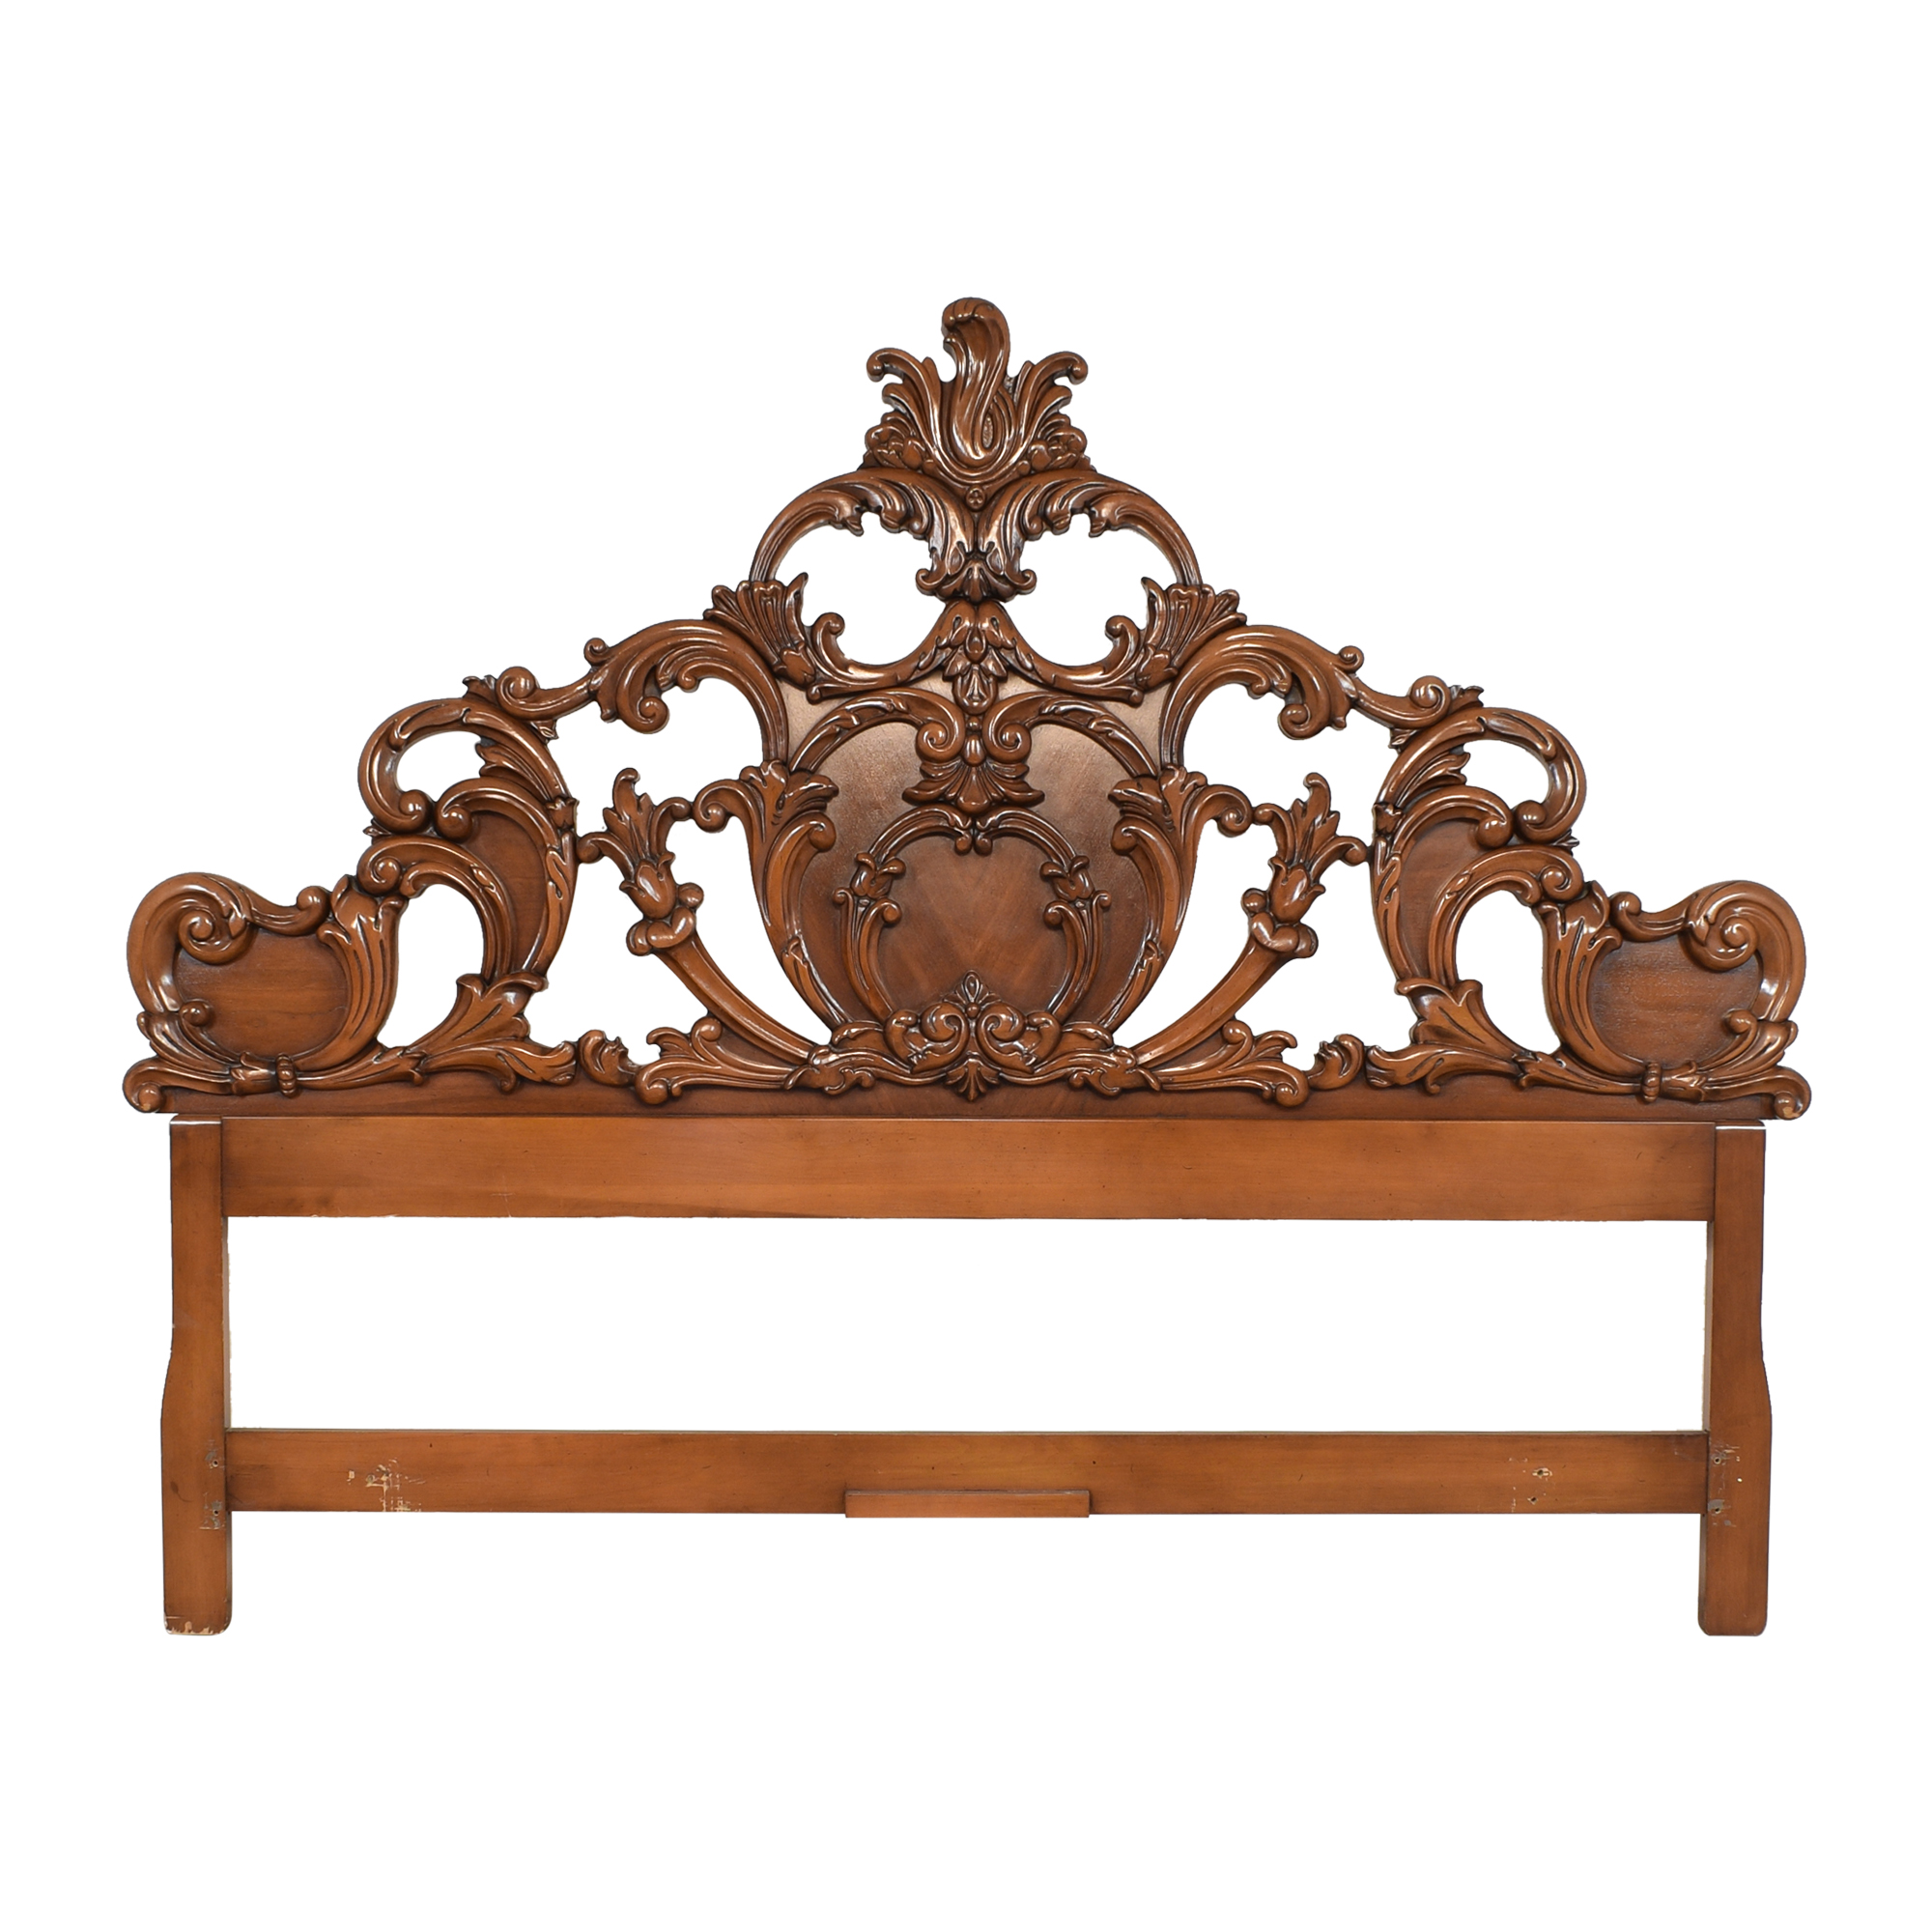 Union National Union Furniture Co. Carved King Headboard Beds